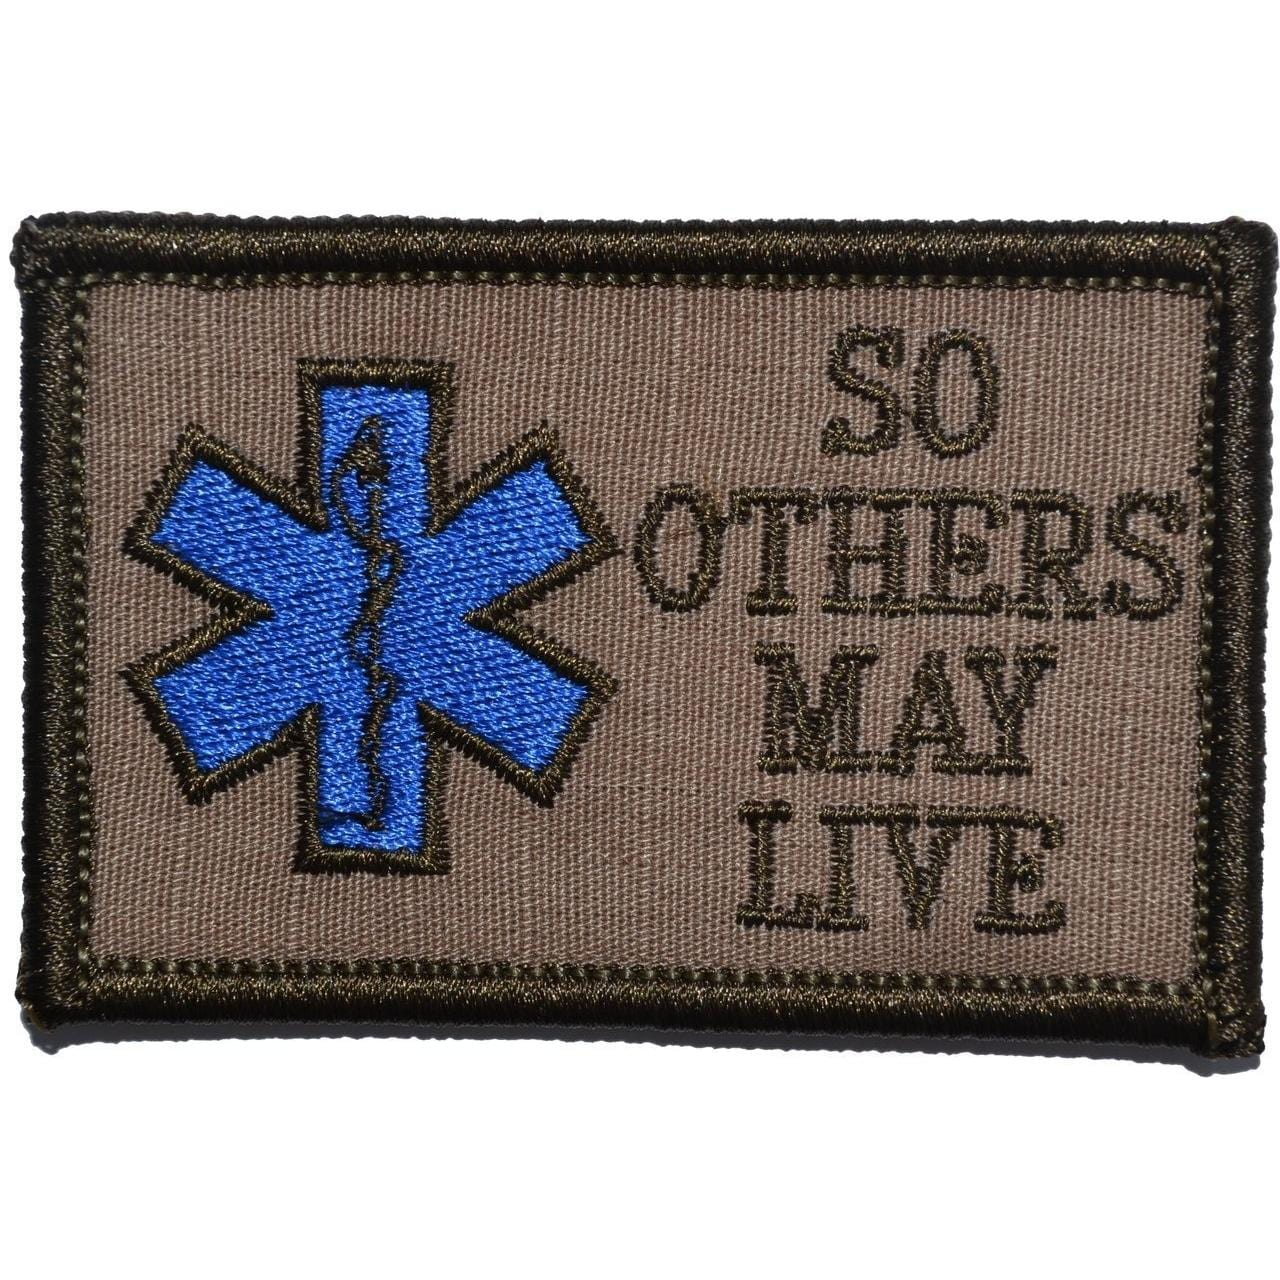 Tactical Gear Junkie Patches Coyote Brown EMS So Others May Live - 2x3 Patch